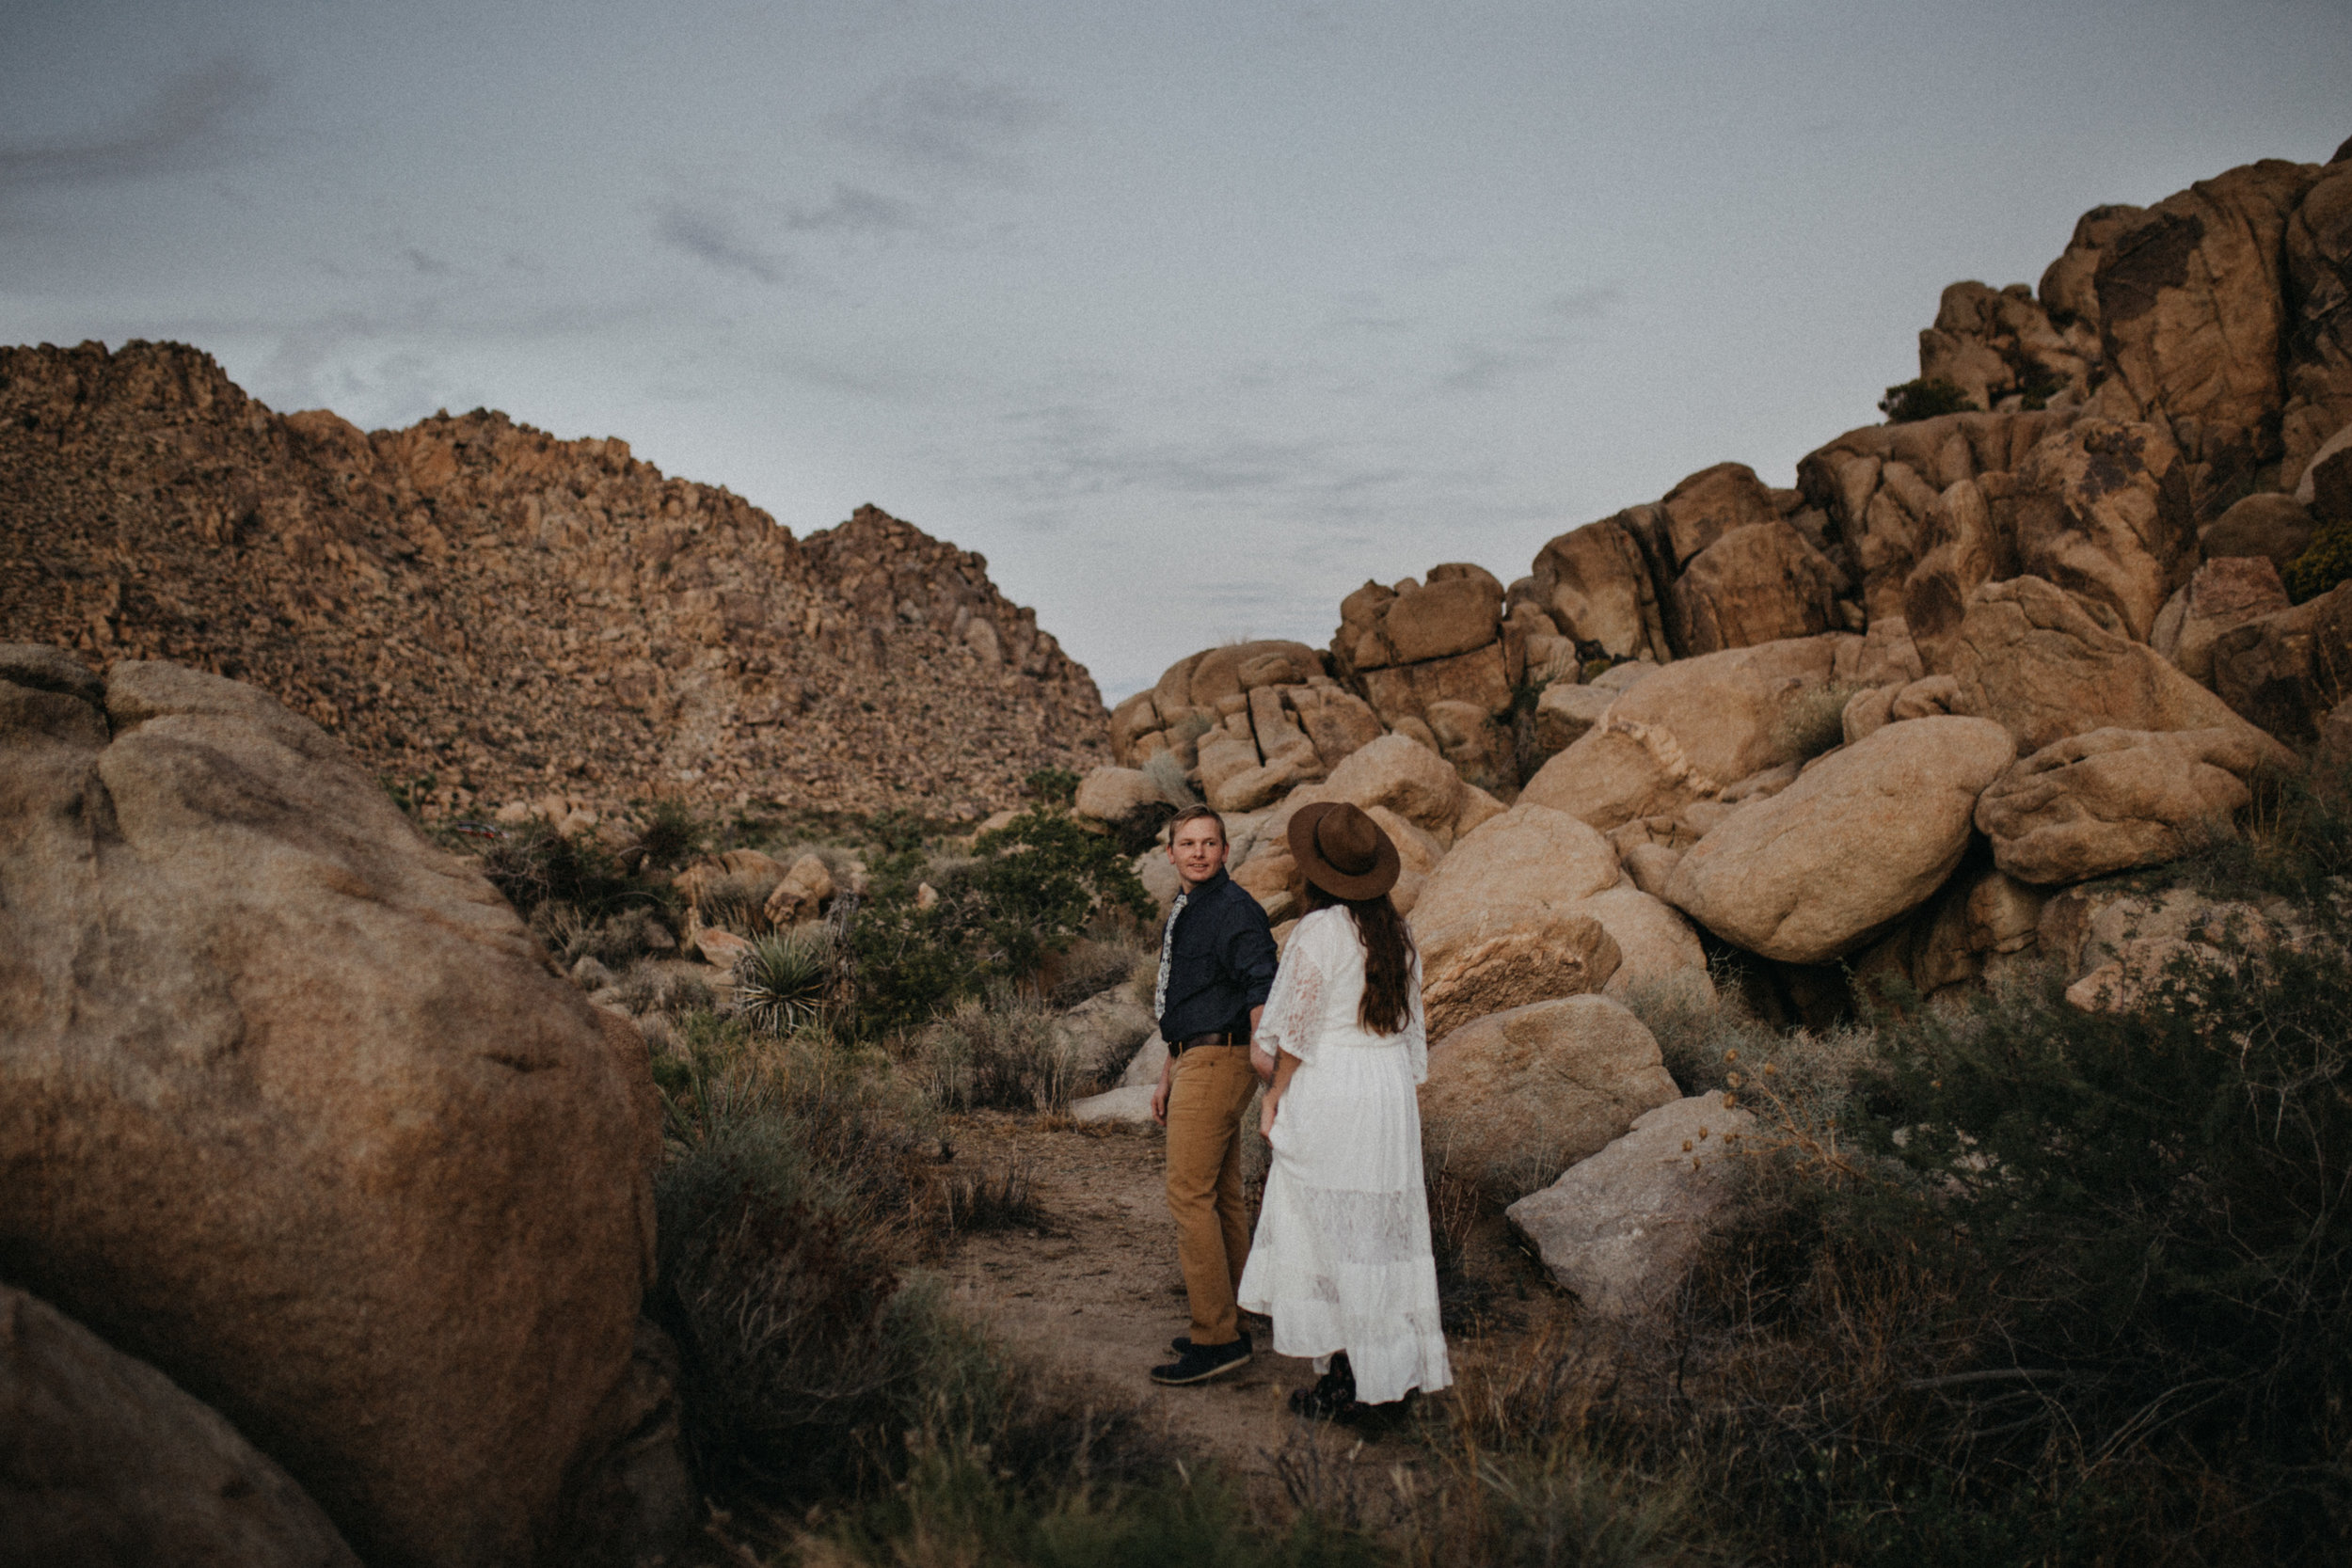 Joshua Tree National Park Adventure Couples Session Photographer Payton Marie Photography-37.jpg